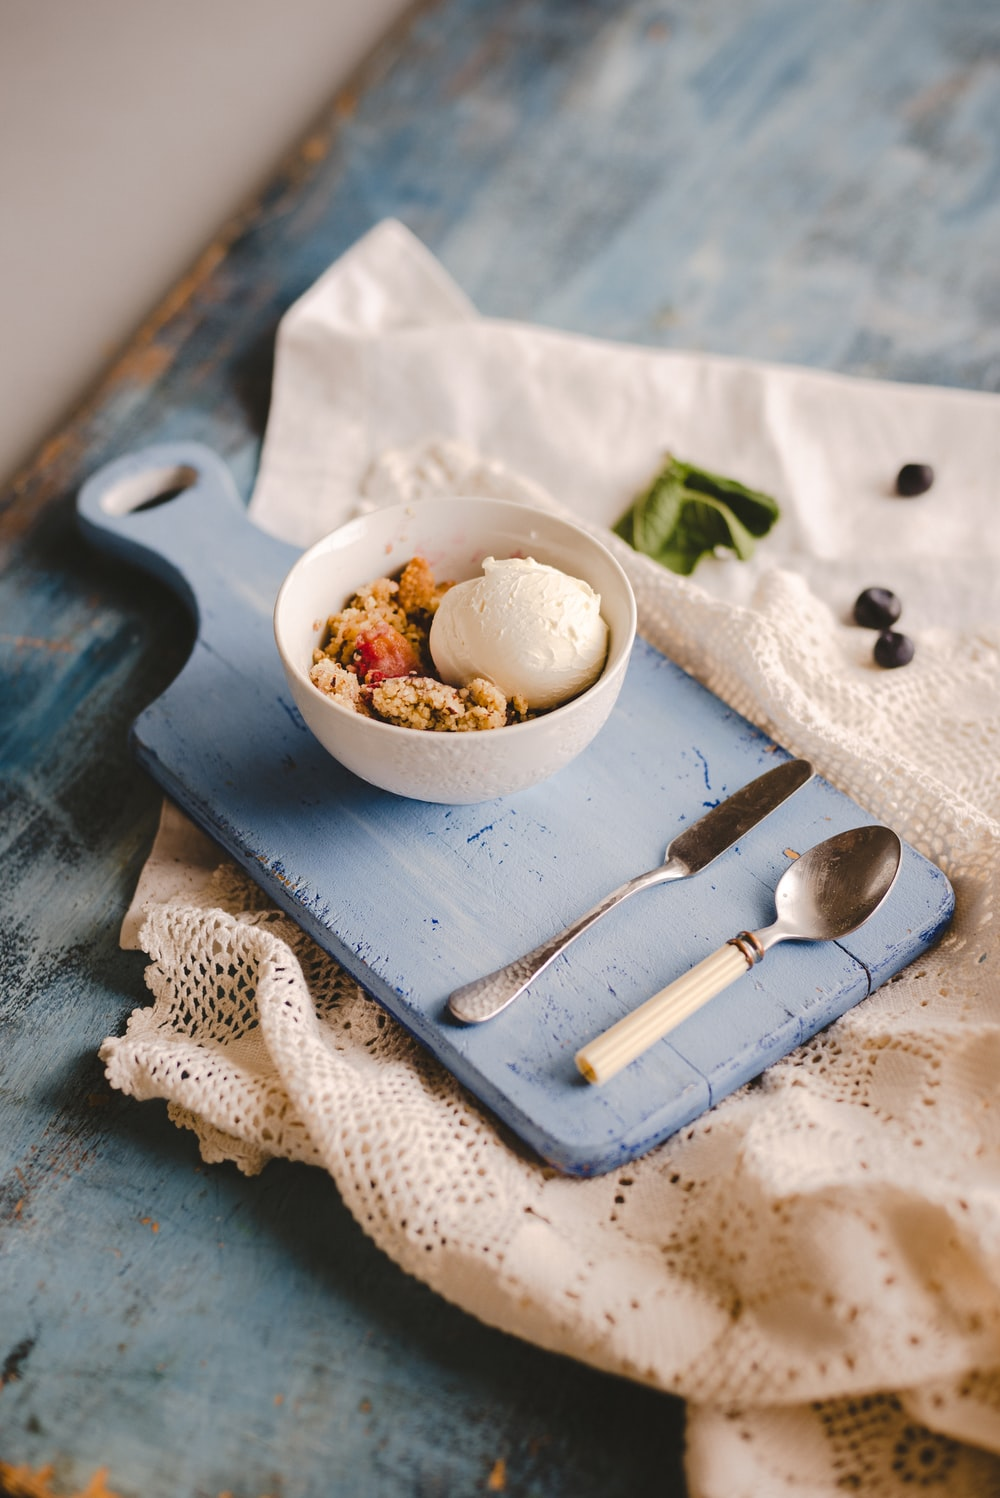 cooked egg and round white ceramic bowl